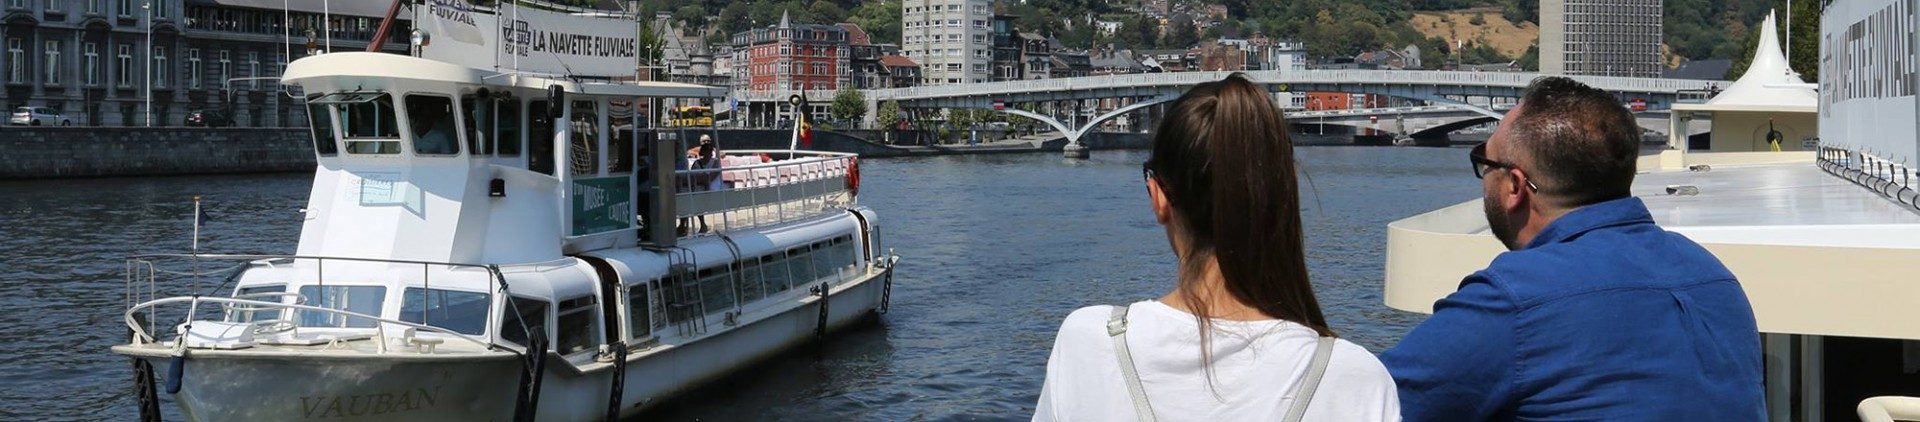 River cruises in Liege province